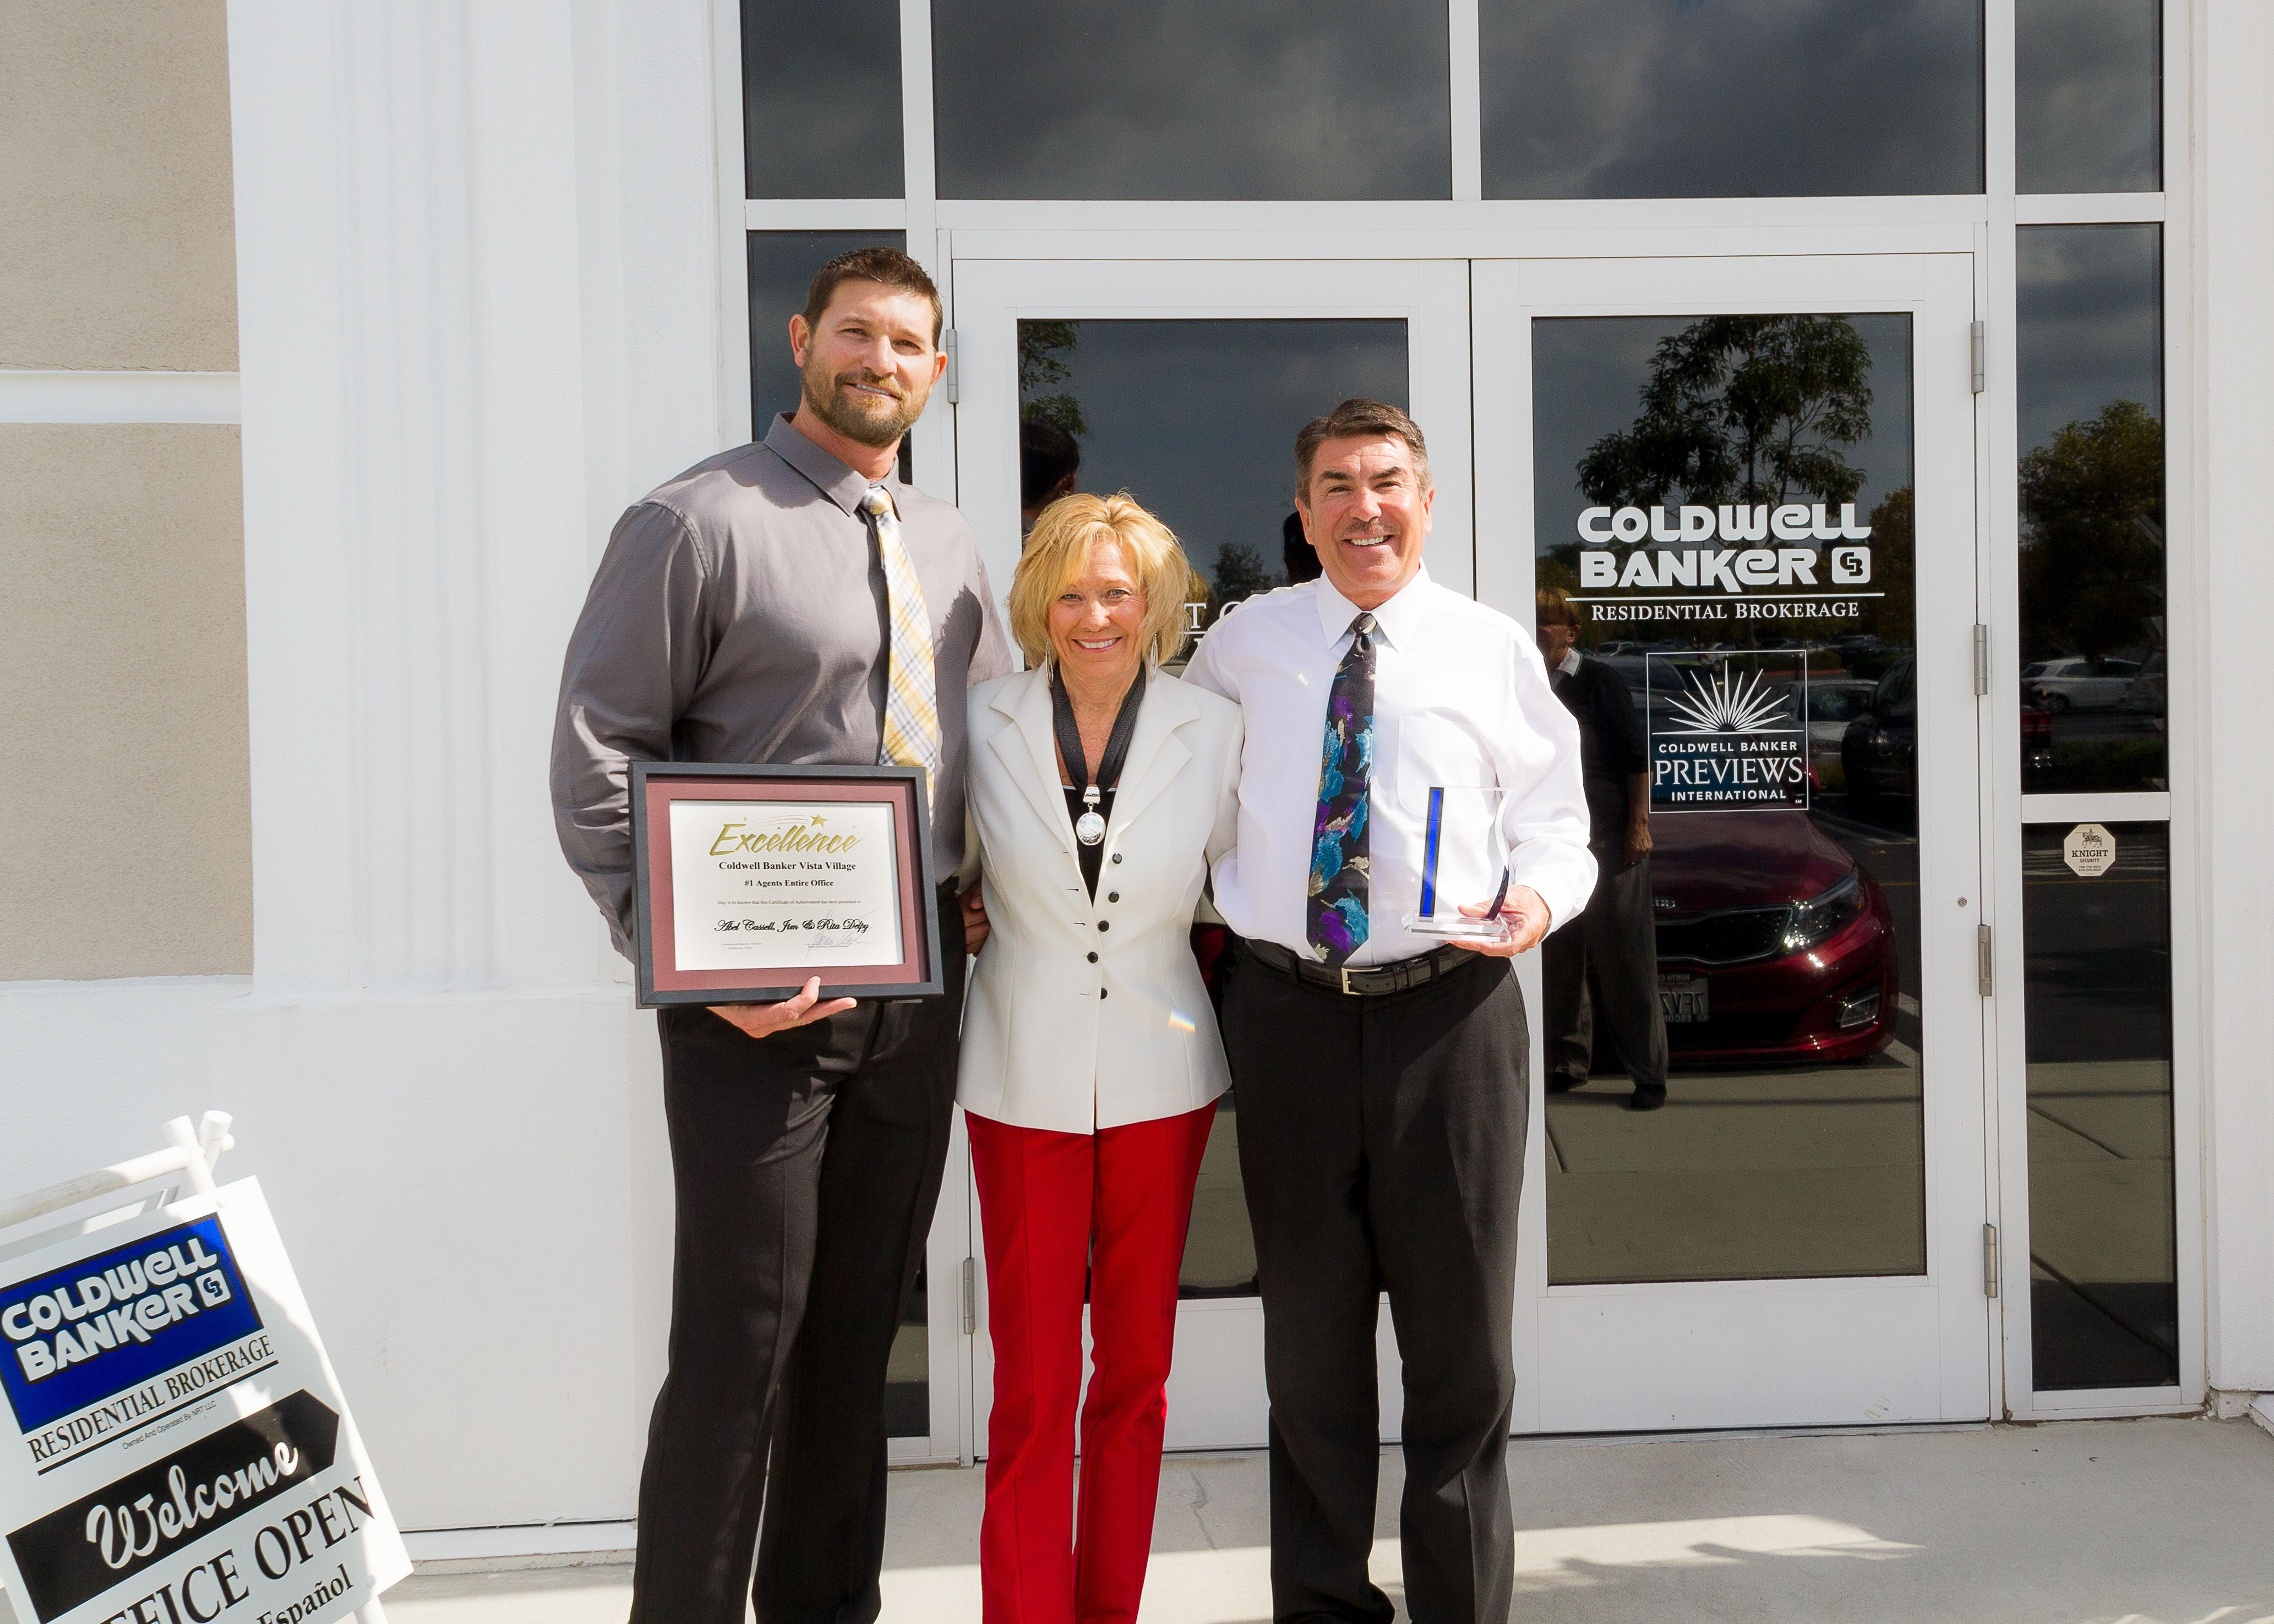 SAN DIEGO, March 9, 2015 – Abel Cassell and Jim Delpy, independent sales associates with Coldwell Banker Residential Brokerage's Vista office, have been named the No. 1 sales associates of the brokerage's Vista office. Both sales associates, a team since 2005, are top producers and have achieved high rankings over the last 5 years.